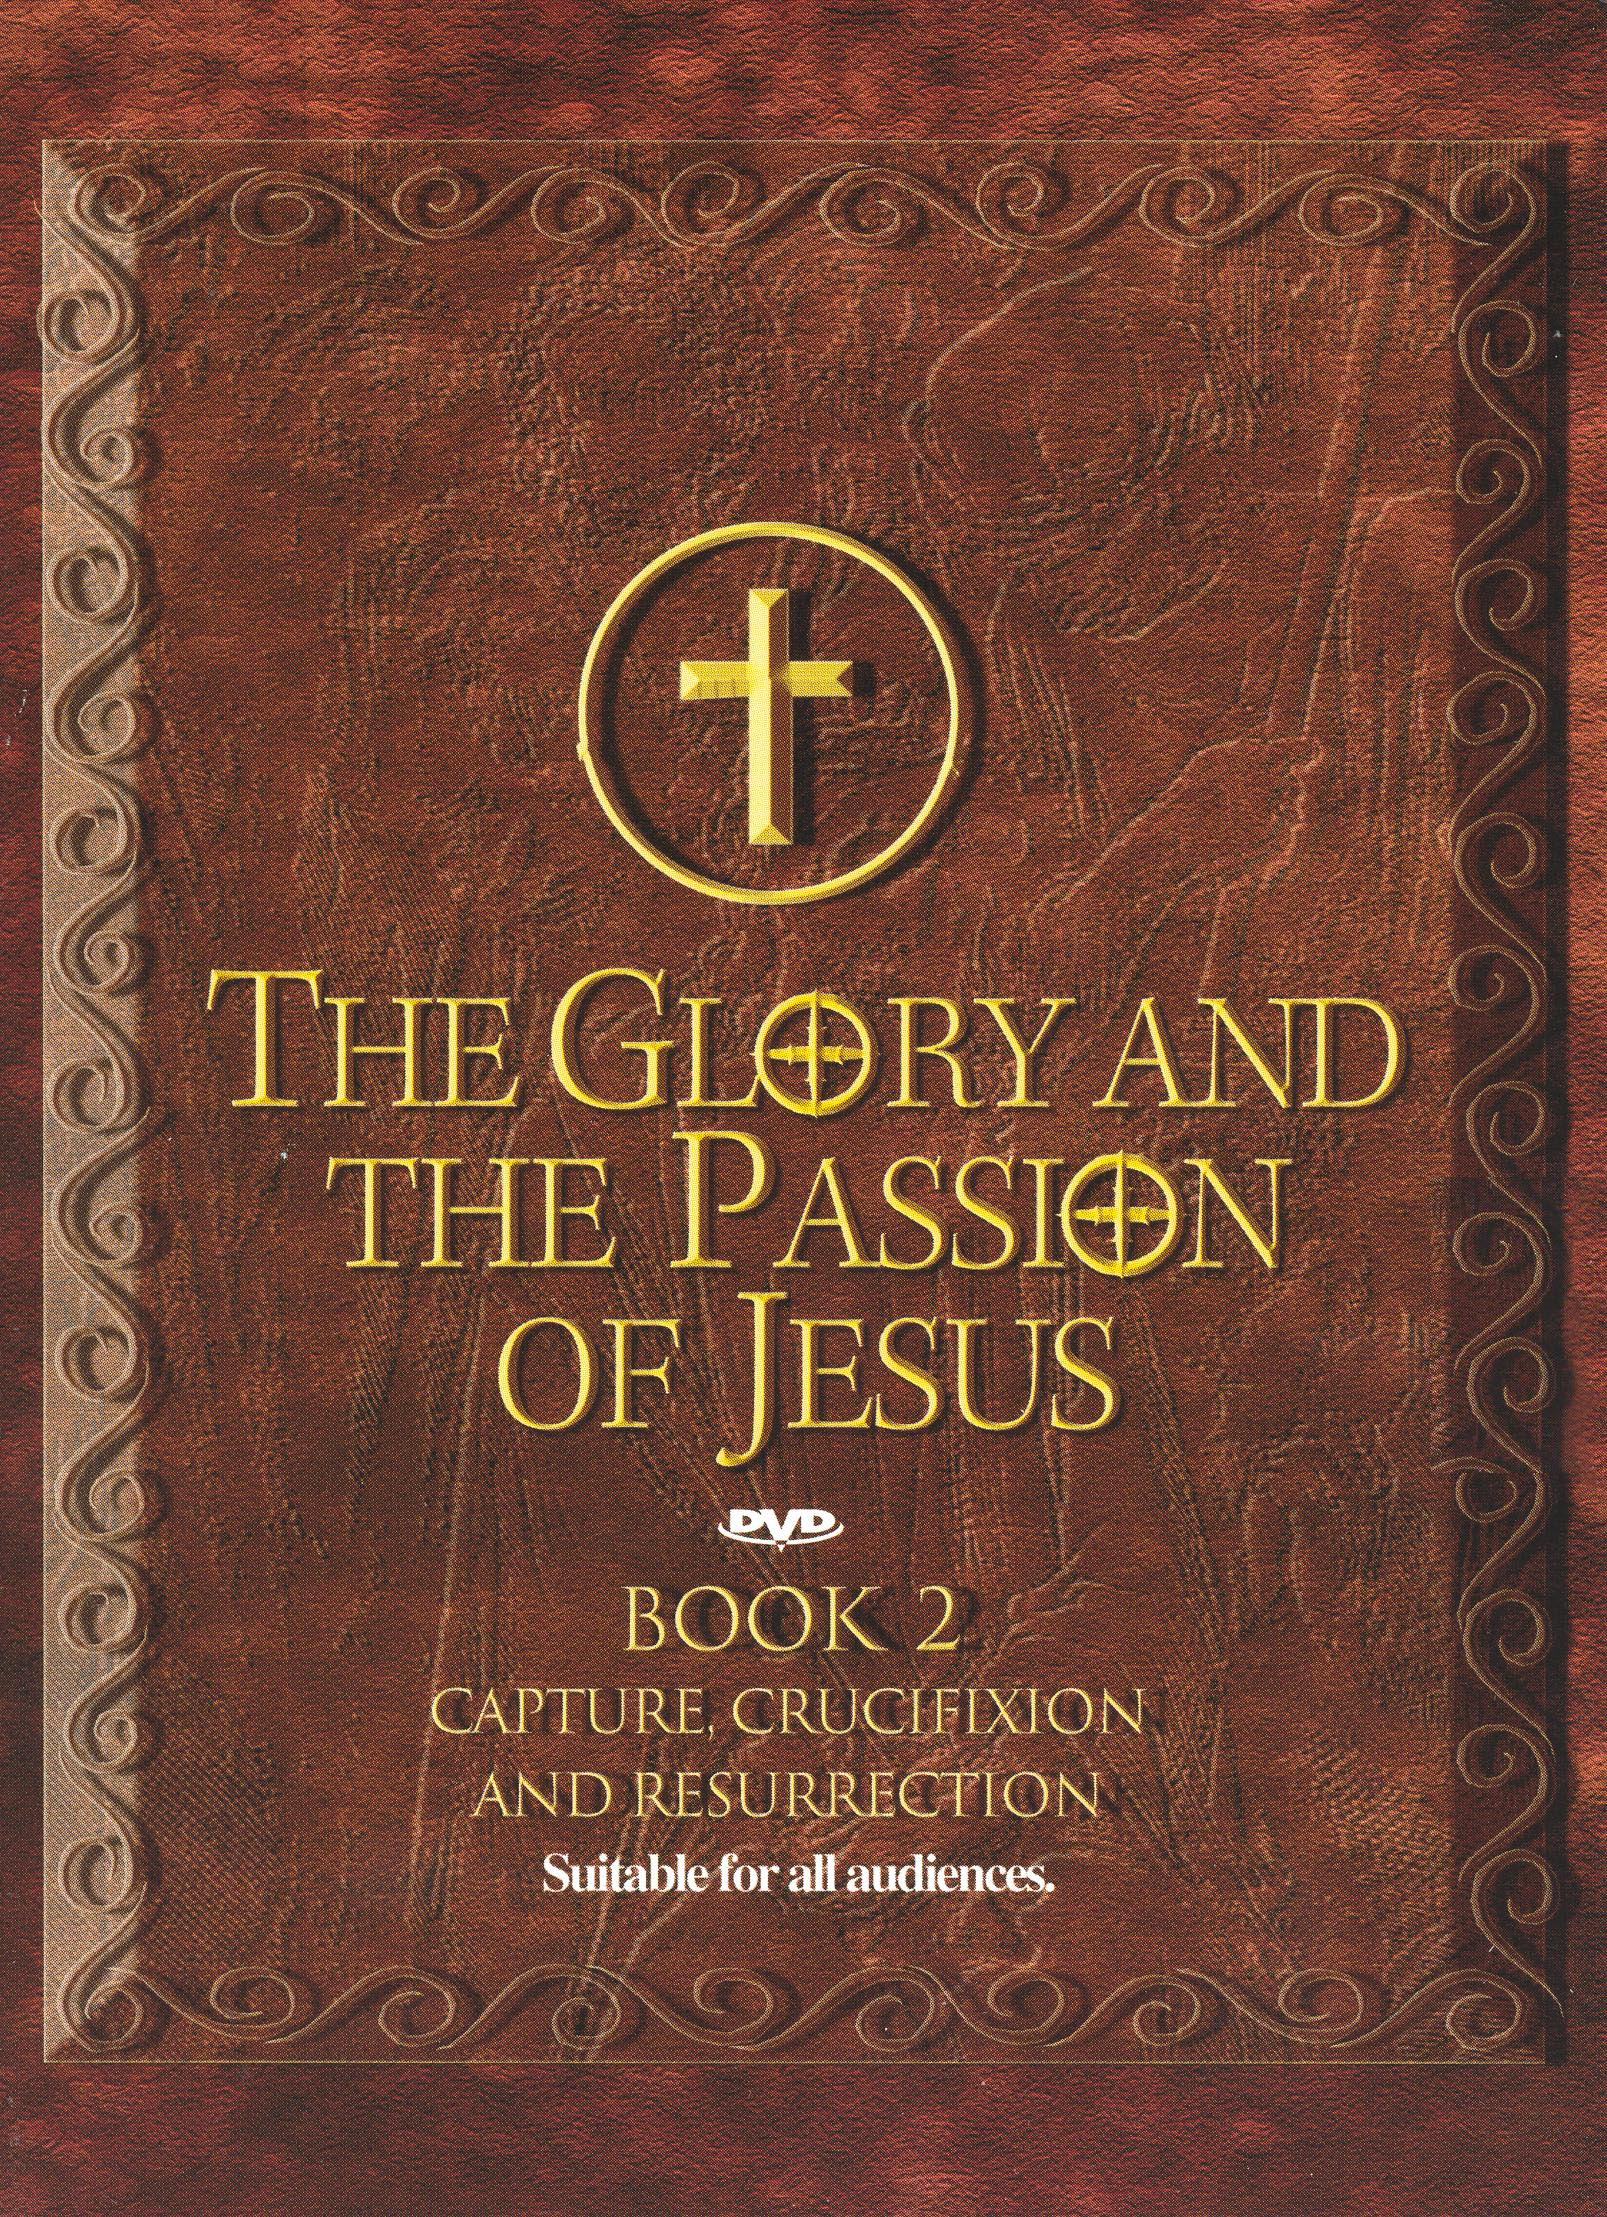 The Glory and the Passion of Jesus: Book 2